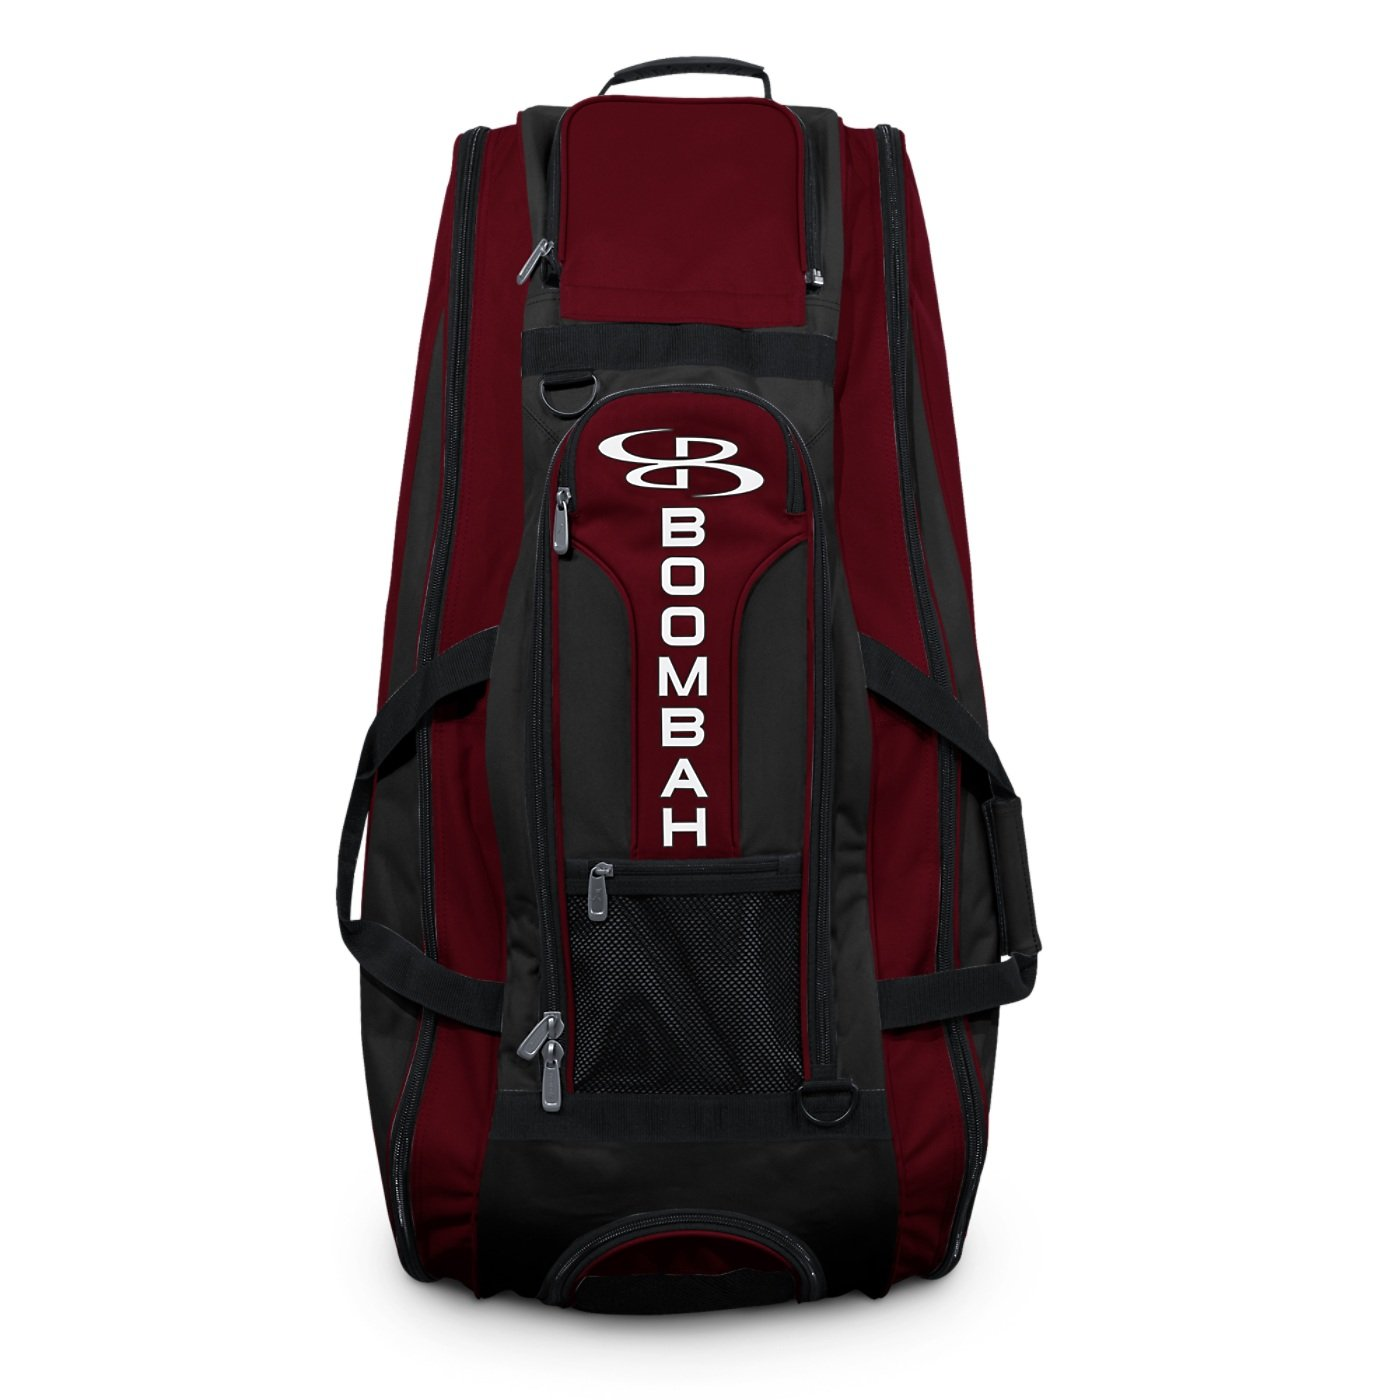 Boombah Beast Baseball / Softball Bat Bag - 40'' x 14'' x 13'' - Black/Maroon - Holds 8 Bats, Glove & Shoe Compartments by Boombah (Image #3)